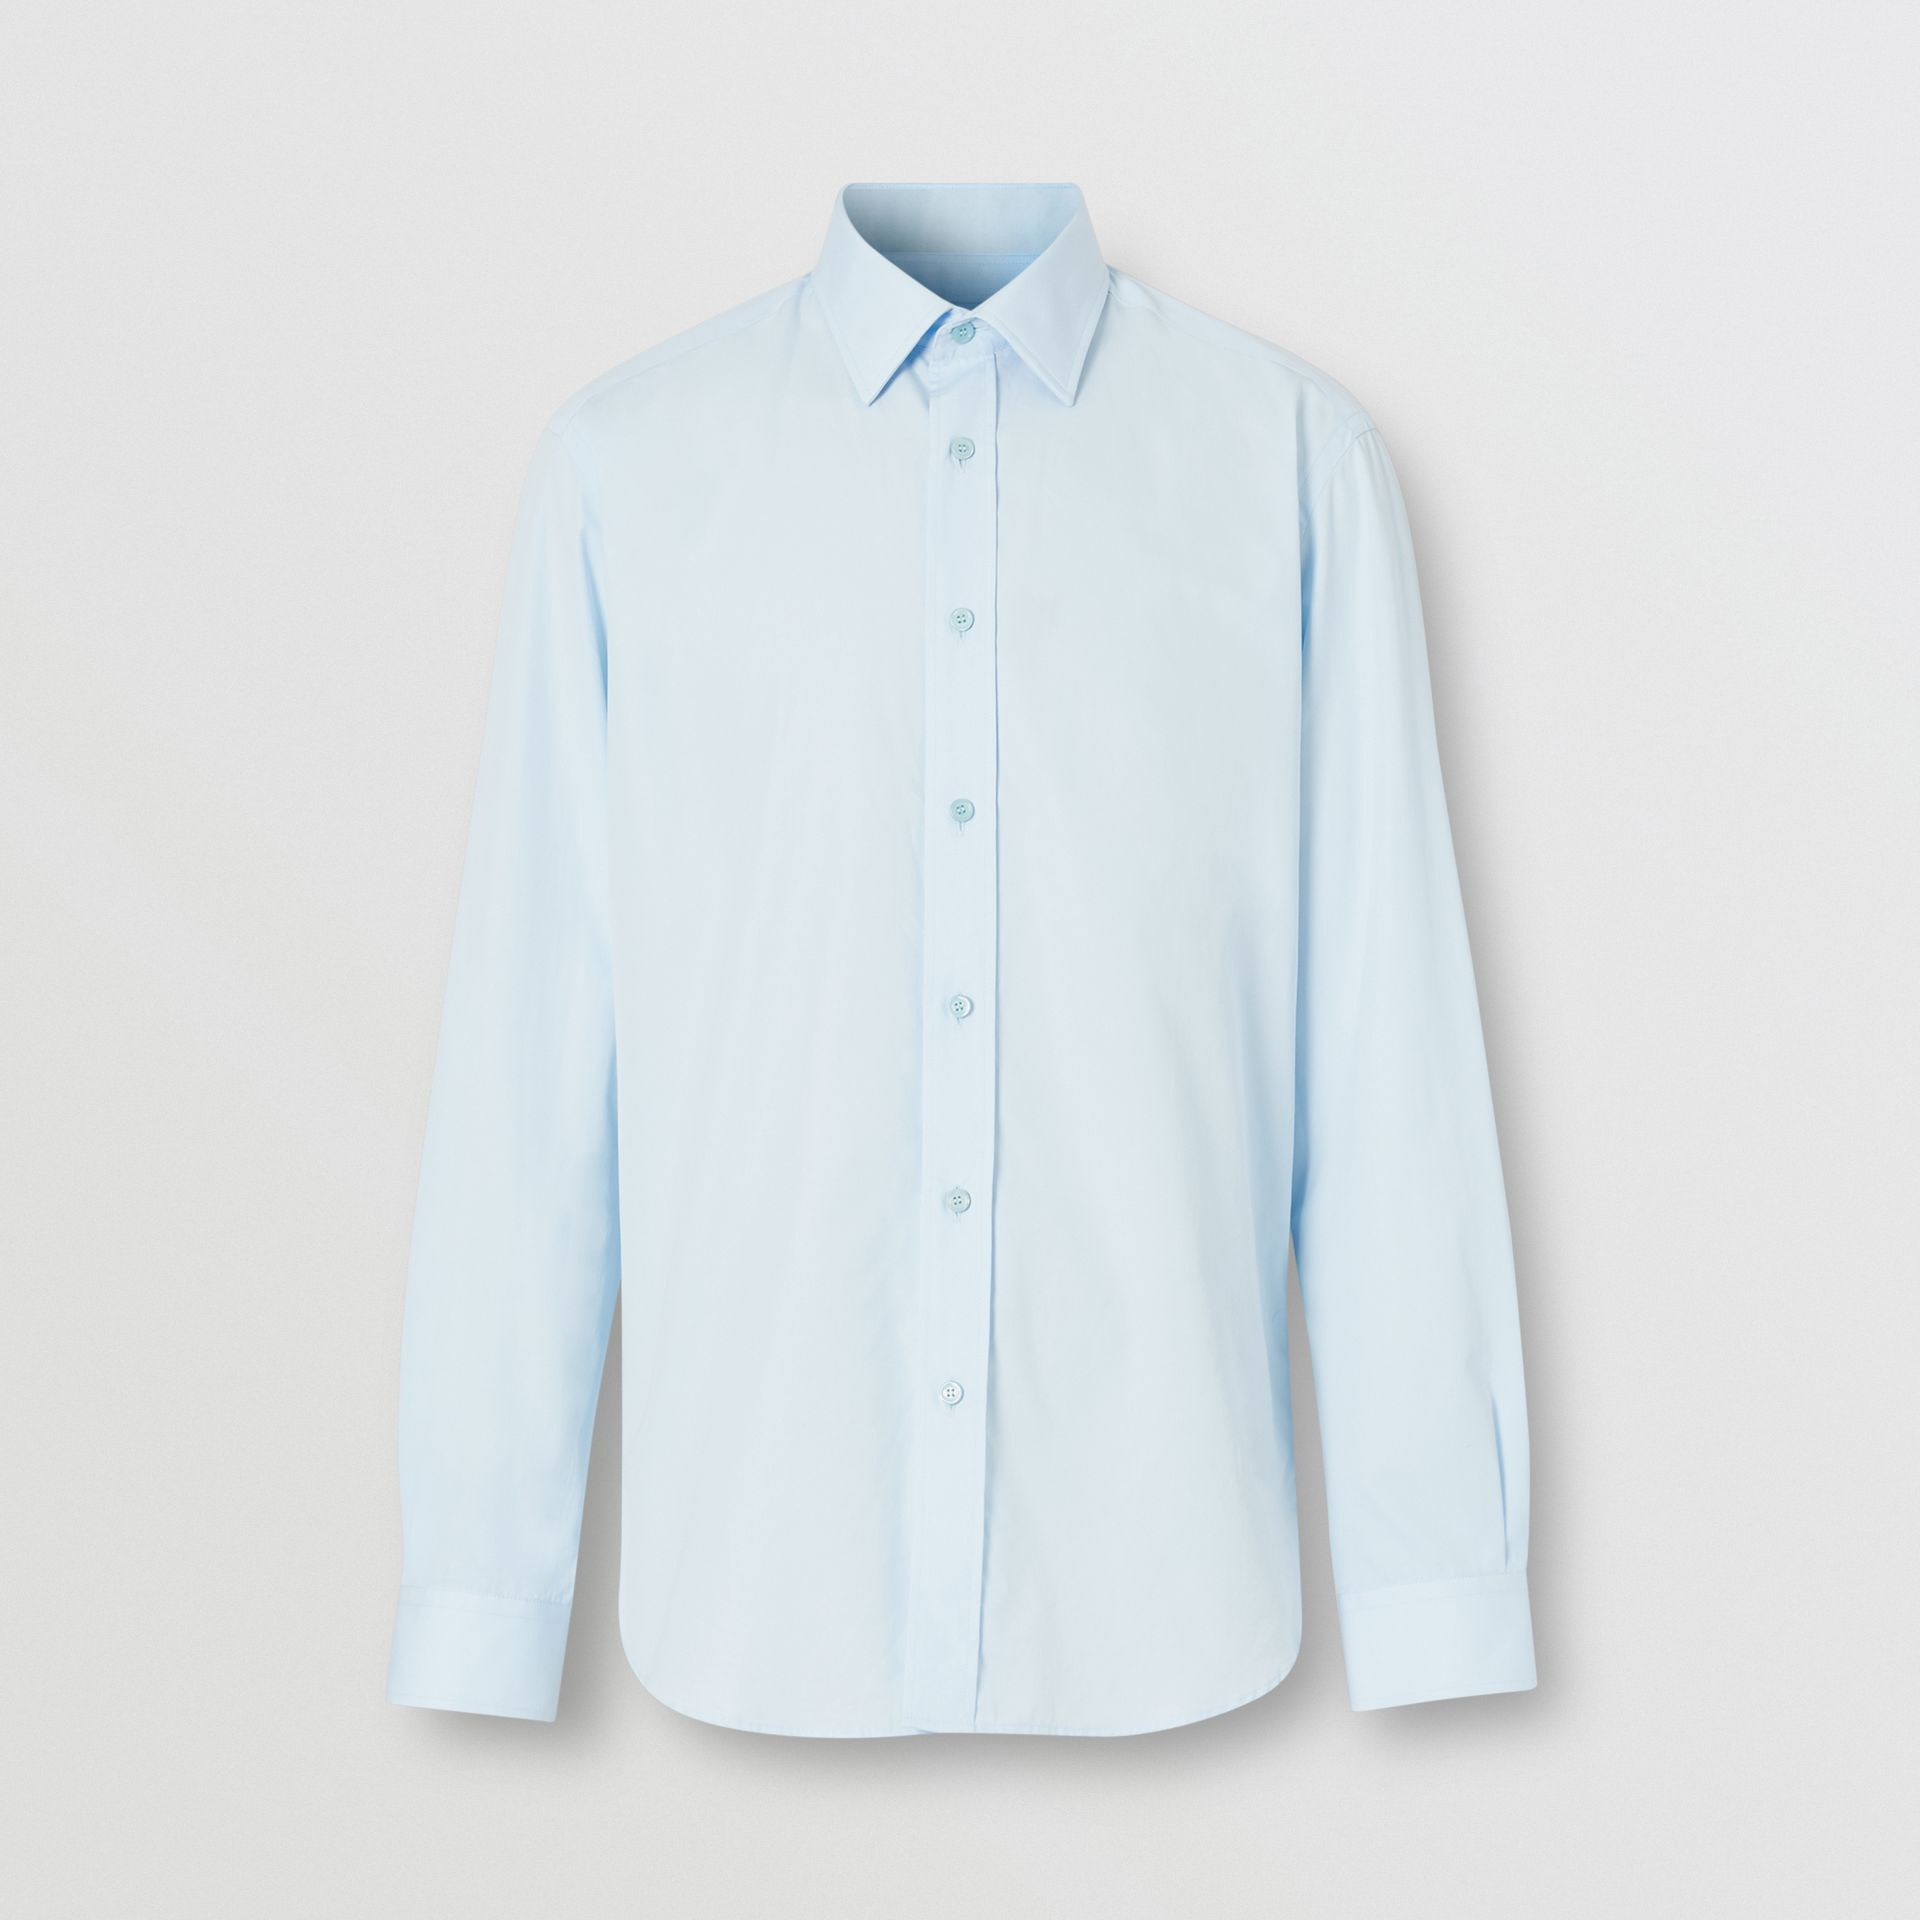 Classic Fit Monogram Motif Cotton Poplin Shirt in Pale Blue - Men | Burberry - gallery image 3